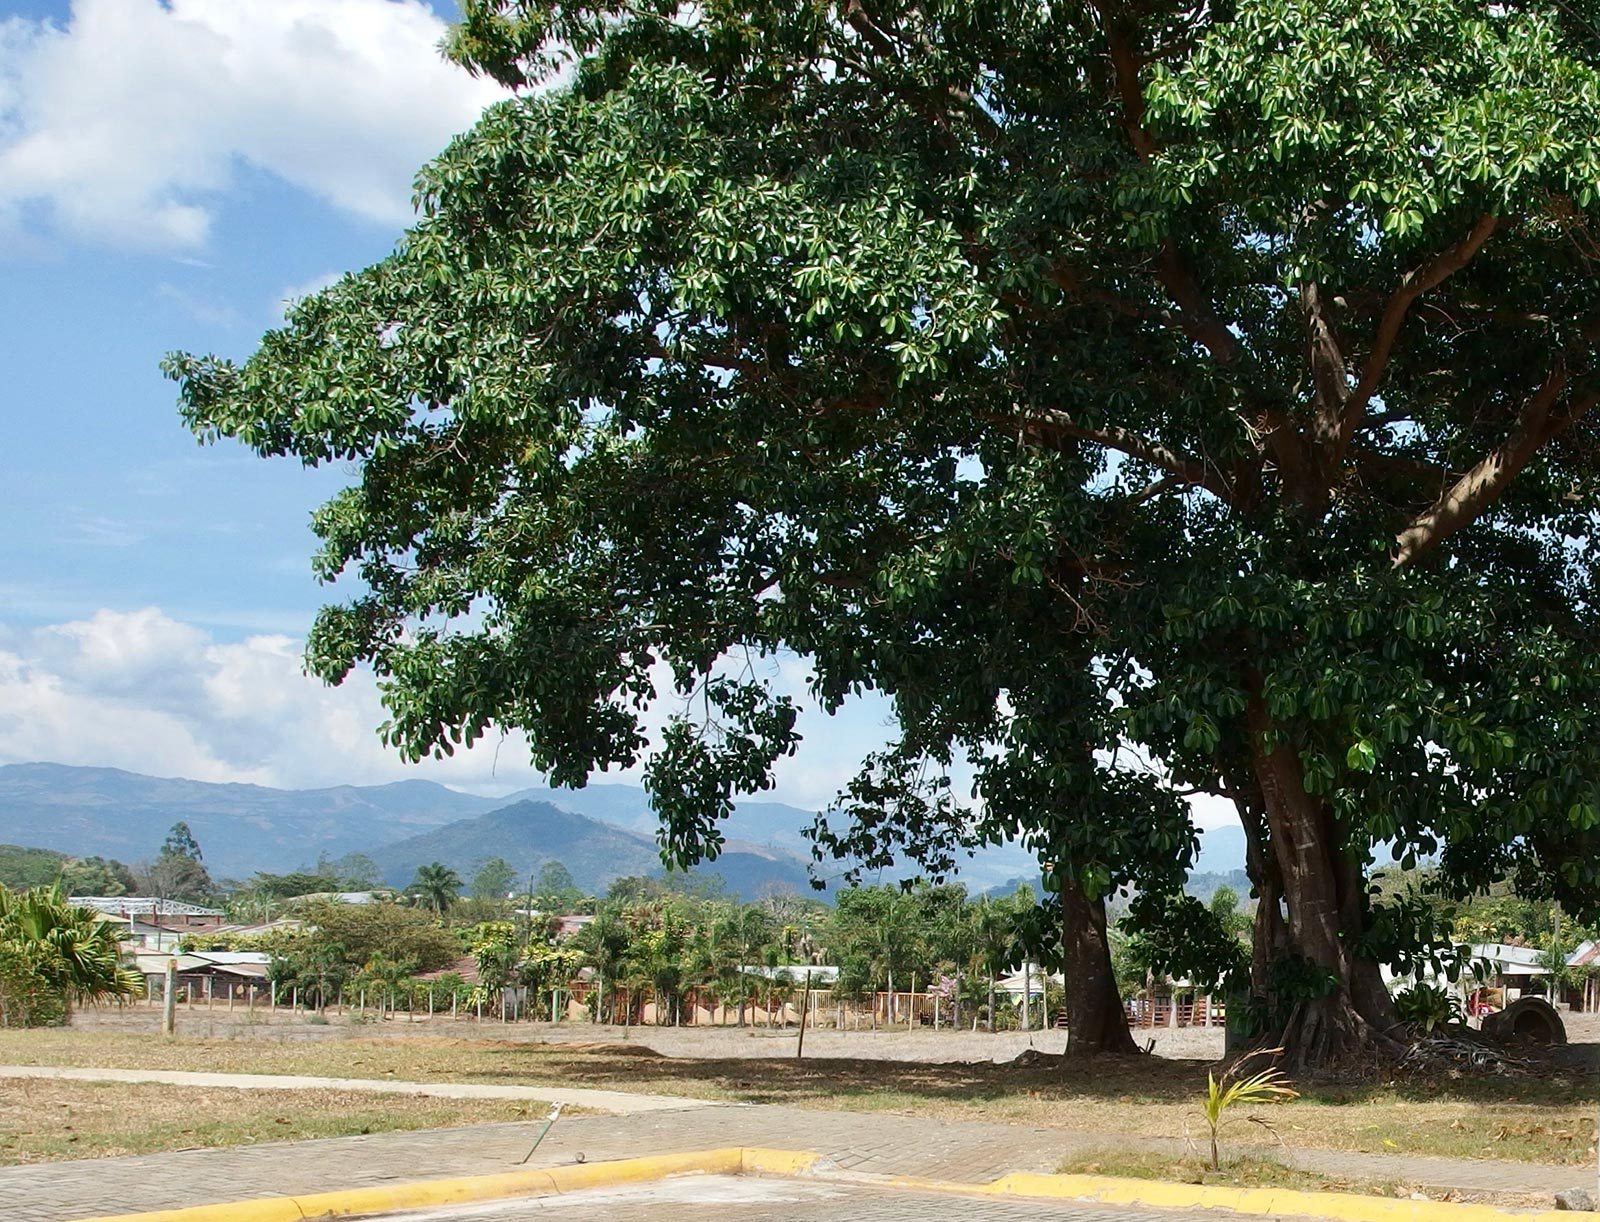 mountain view lot for sale palmares costa rica, ready to build lot palmares costa rica, family friendly neighborhood lot cpalmares costa rica, mountain view lot central valley